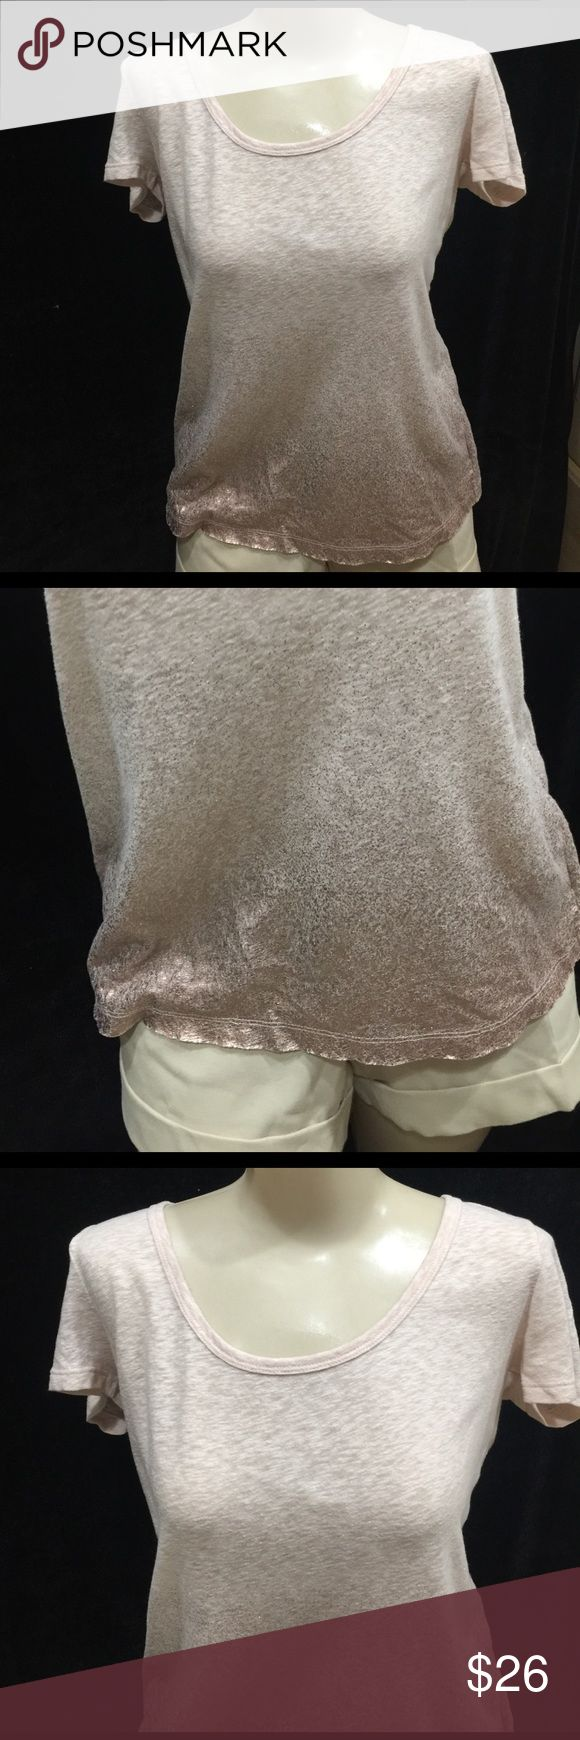 American Eagle Metallic Ombré Tshirt Sz Medium Very good condition, blush color American Eagle Outfitters Tops Tees - Short Sleeve